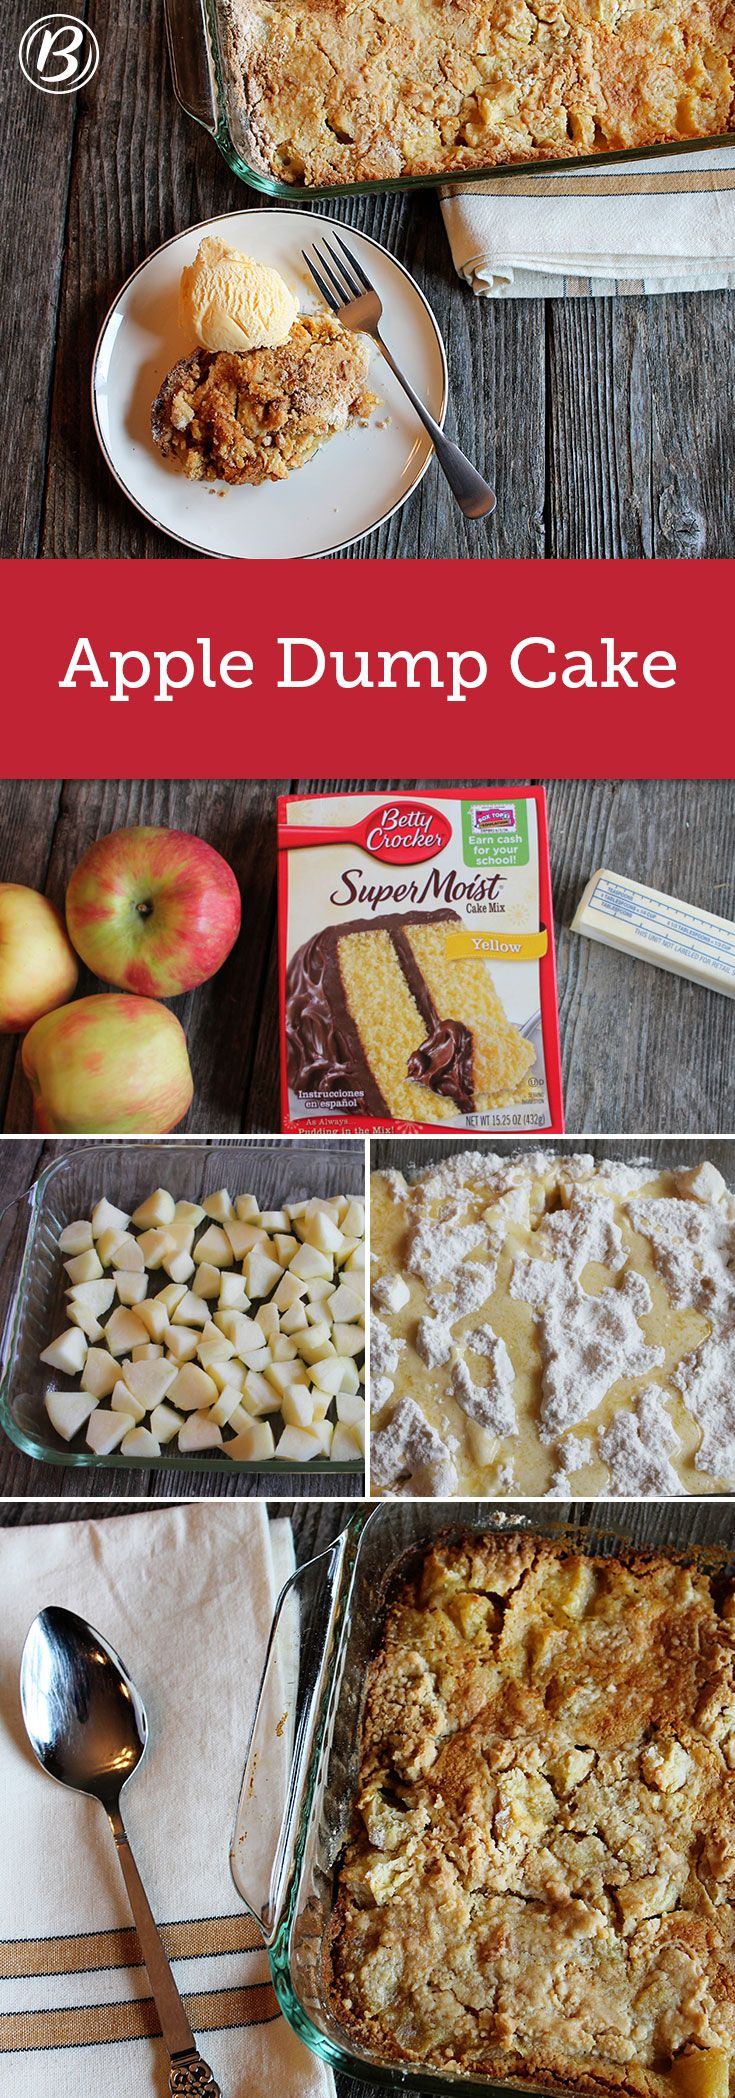 Fresh apples, yellow cake and melted butter combine in this easy-to-make, and easy-to-eat, dessert. It's ready to bake in a short 10 minutes!